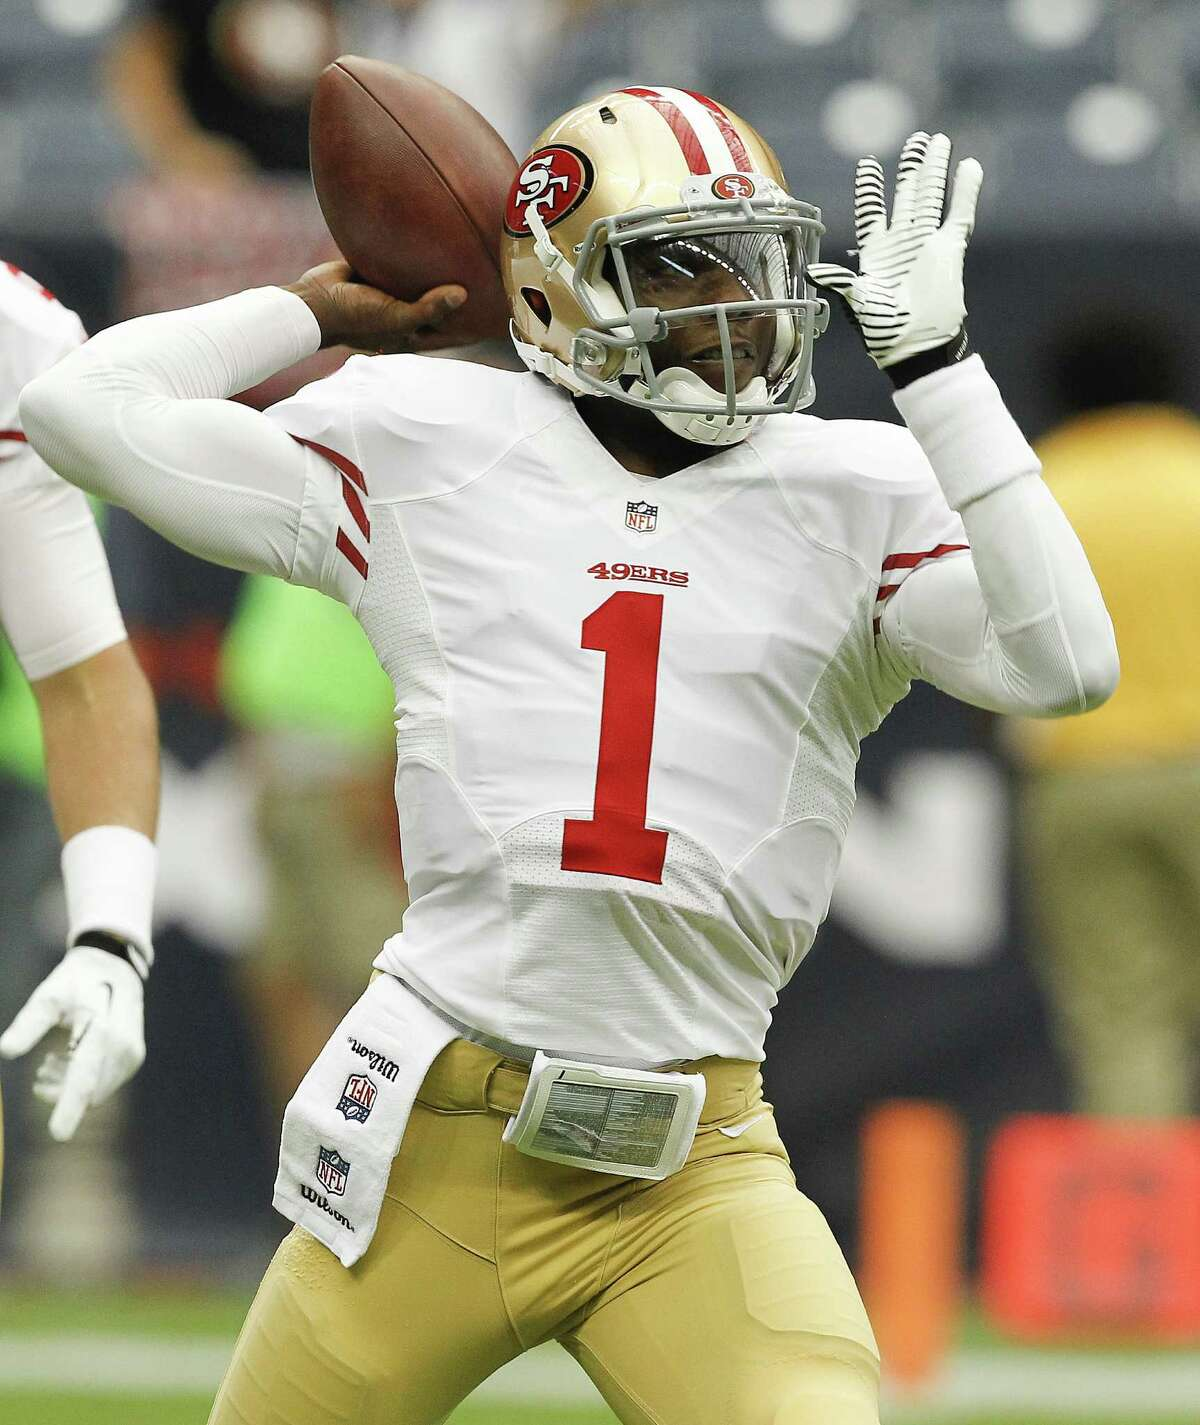 HOUSTON, TX - AUGUST 28: Josh Johnson #1 of the San Francisco 49ers throws a pass during warm ups before playing the Houston Texans at Reliant Stadium on August 28, 2014 in Houston, Texas.